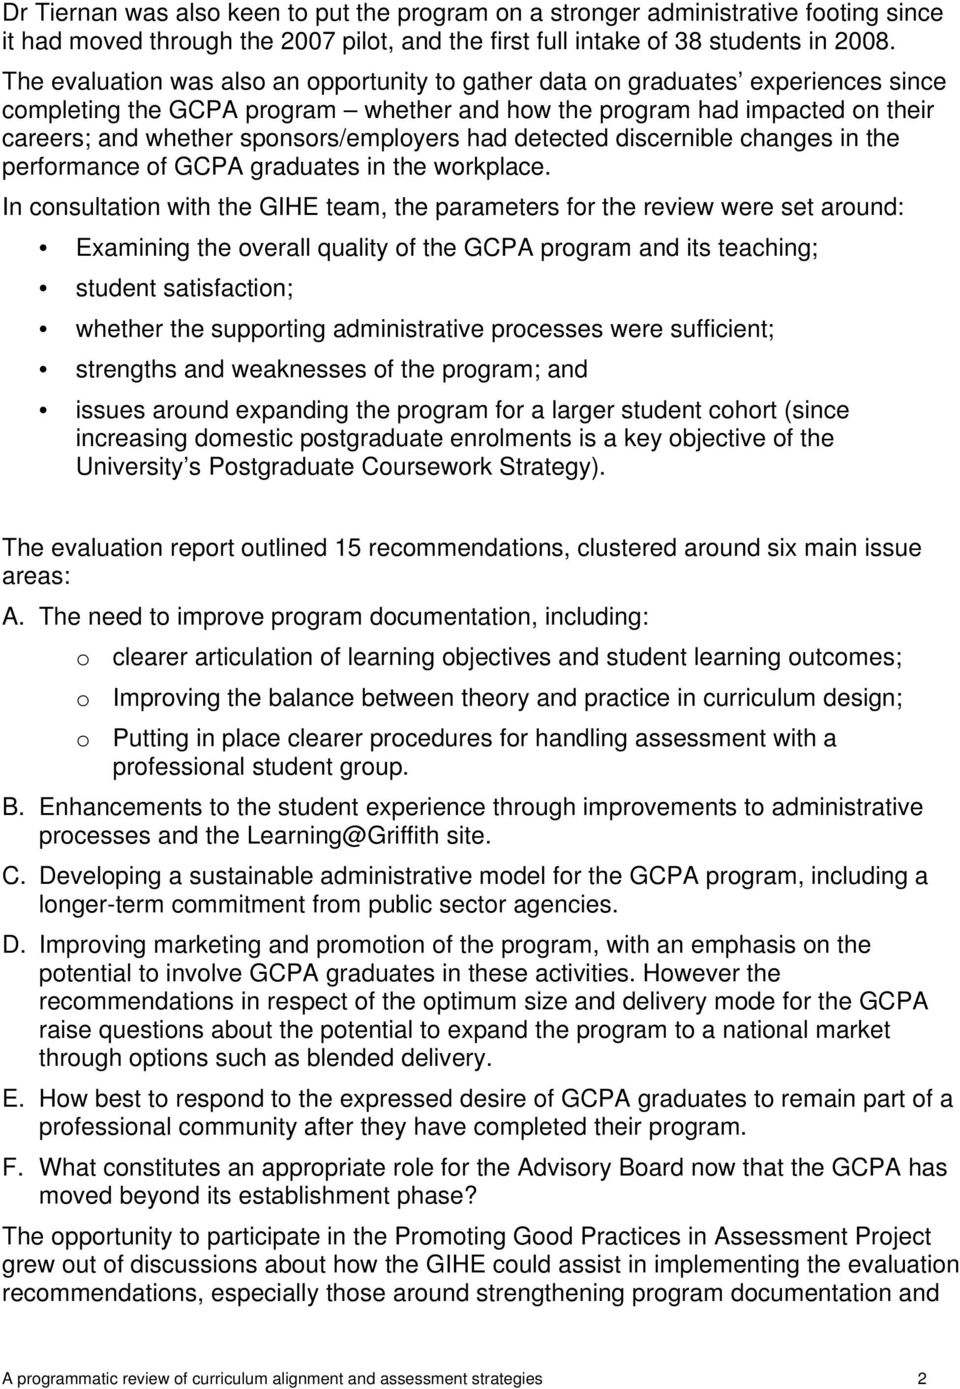 sponsors/employers had detected discernible changes in the performance of GCPA graduates in the workplace.